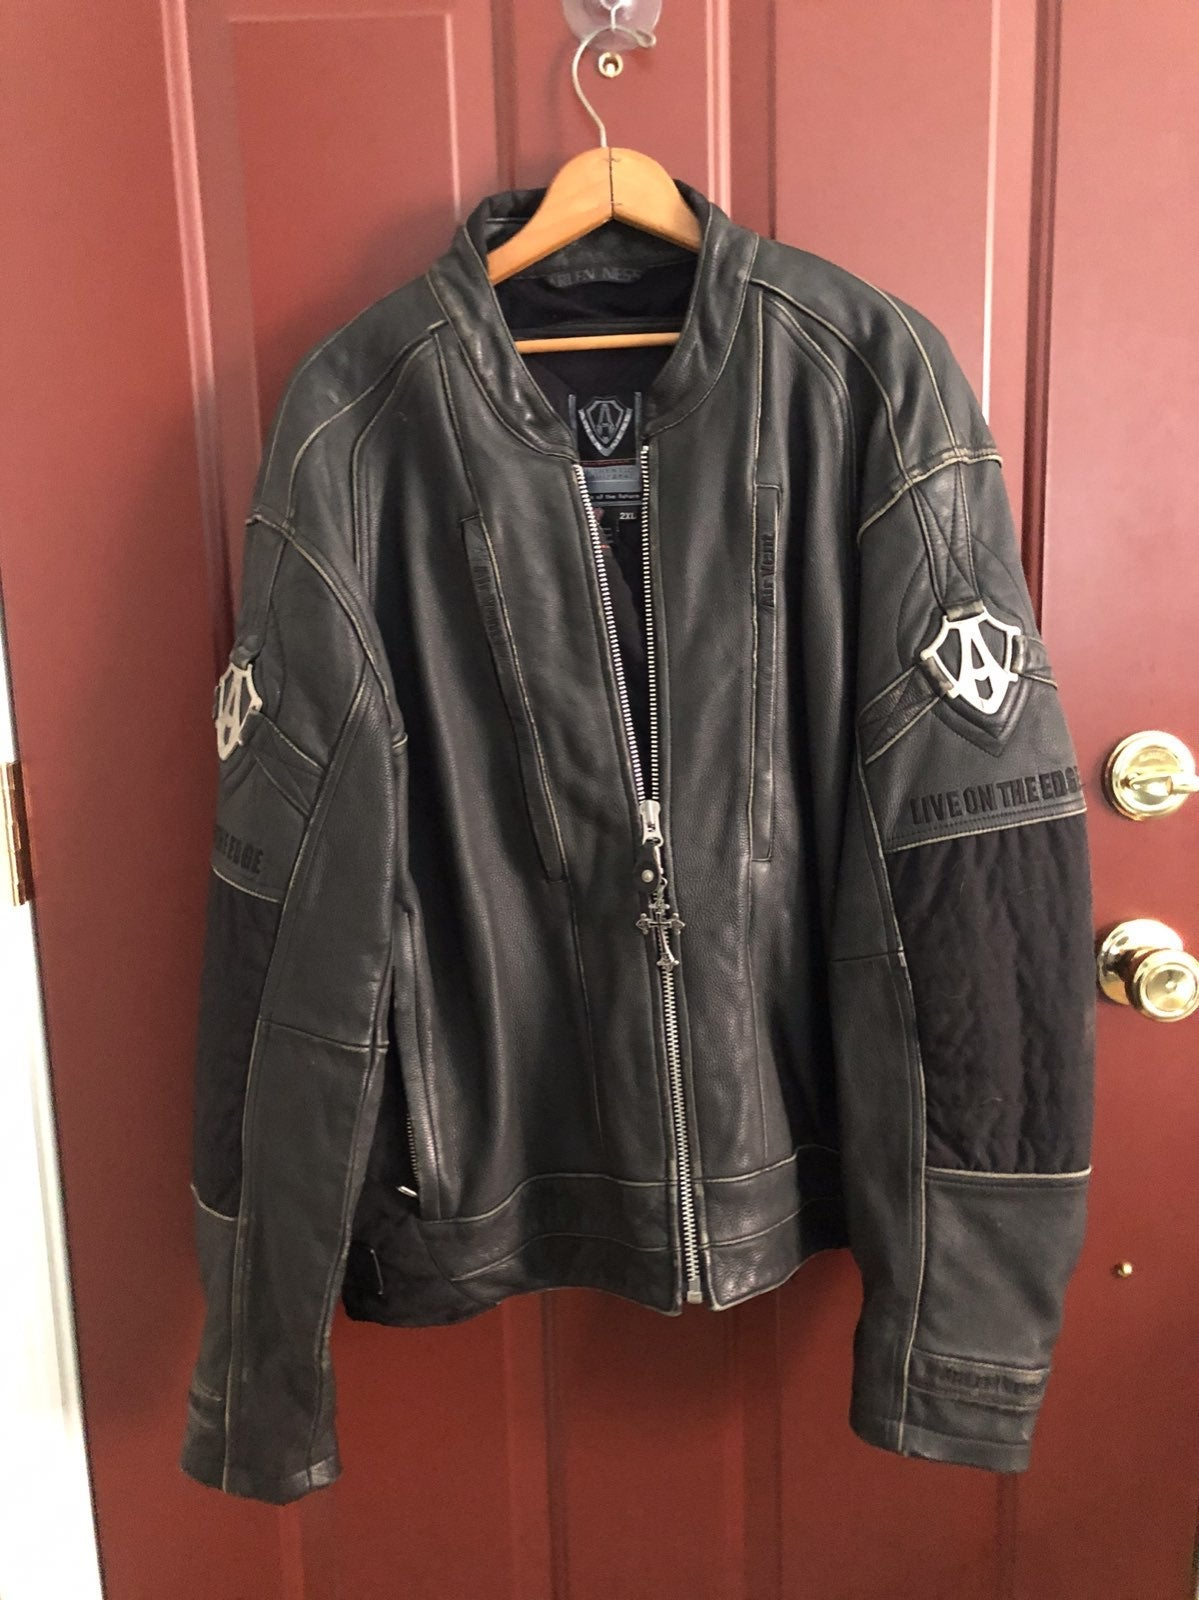 Authentic ARLEN NESS Motorcycle Jacket